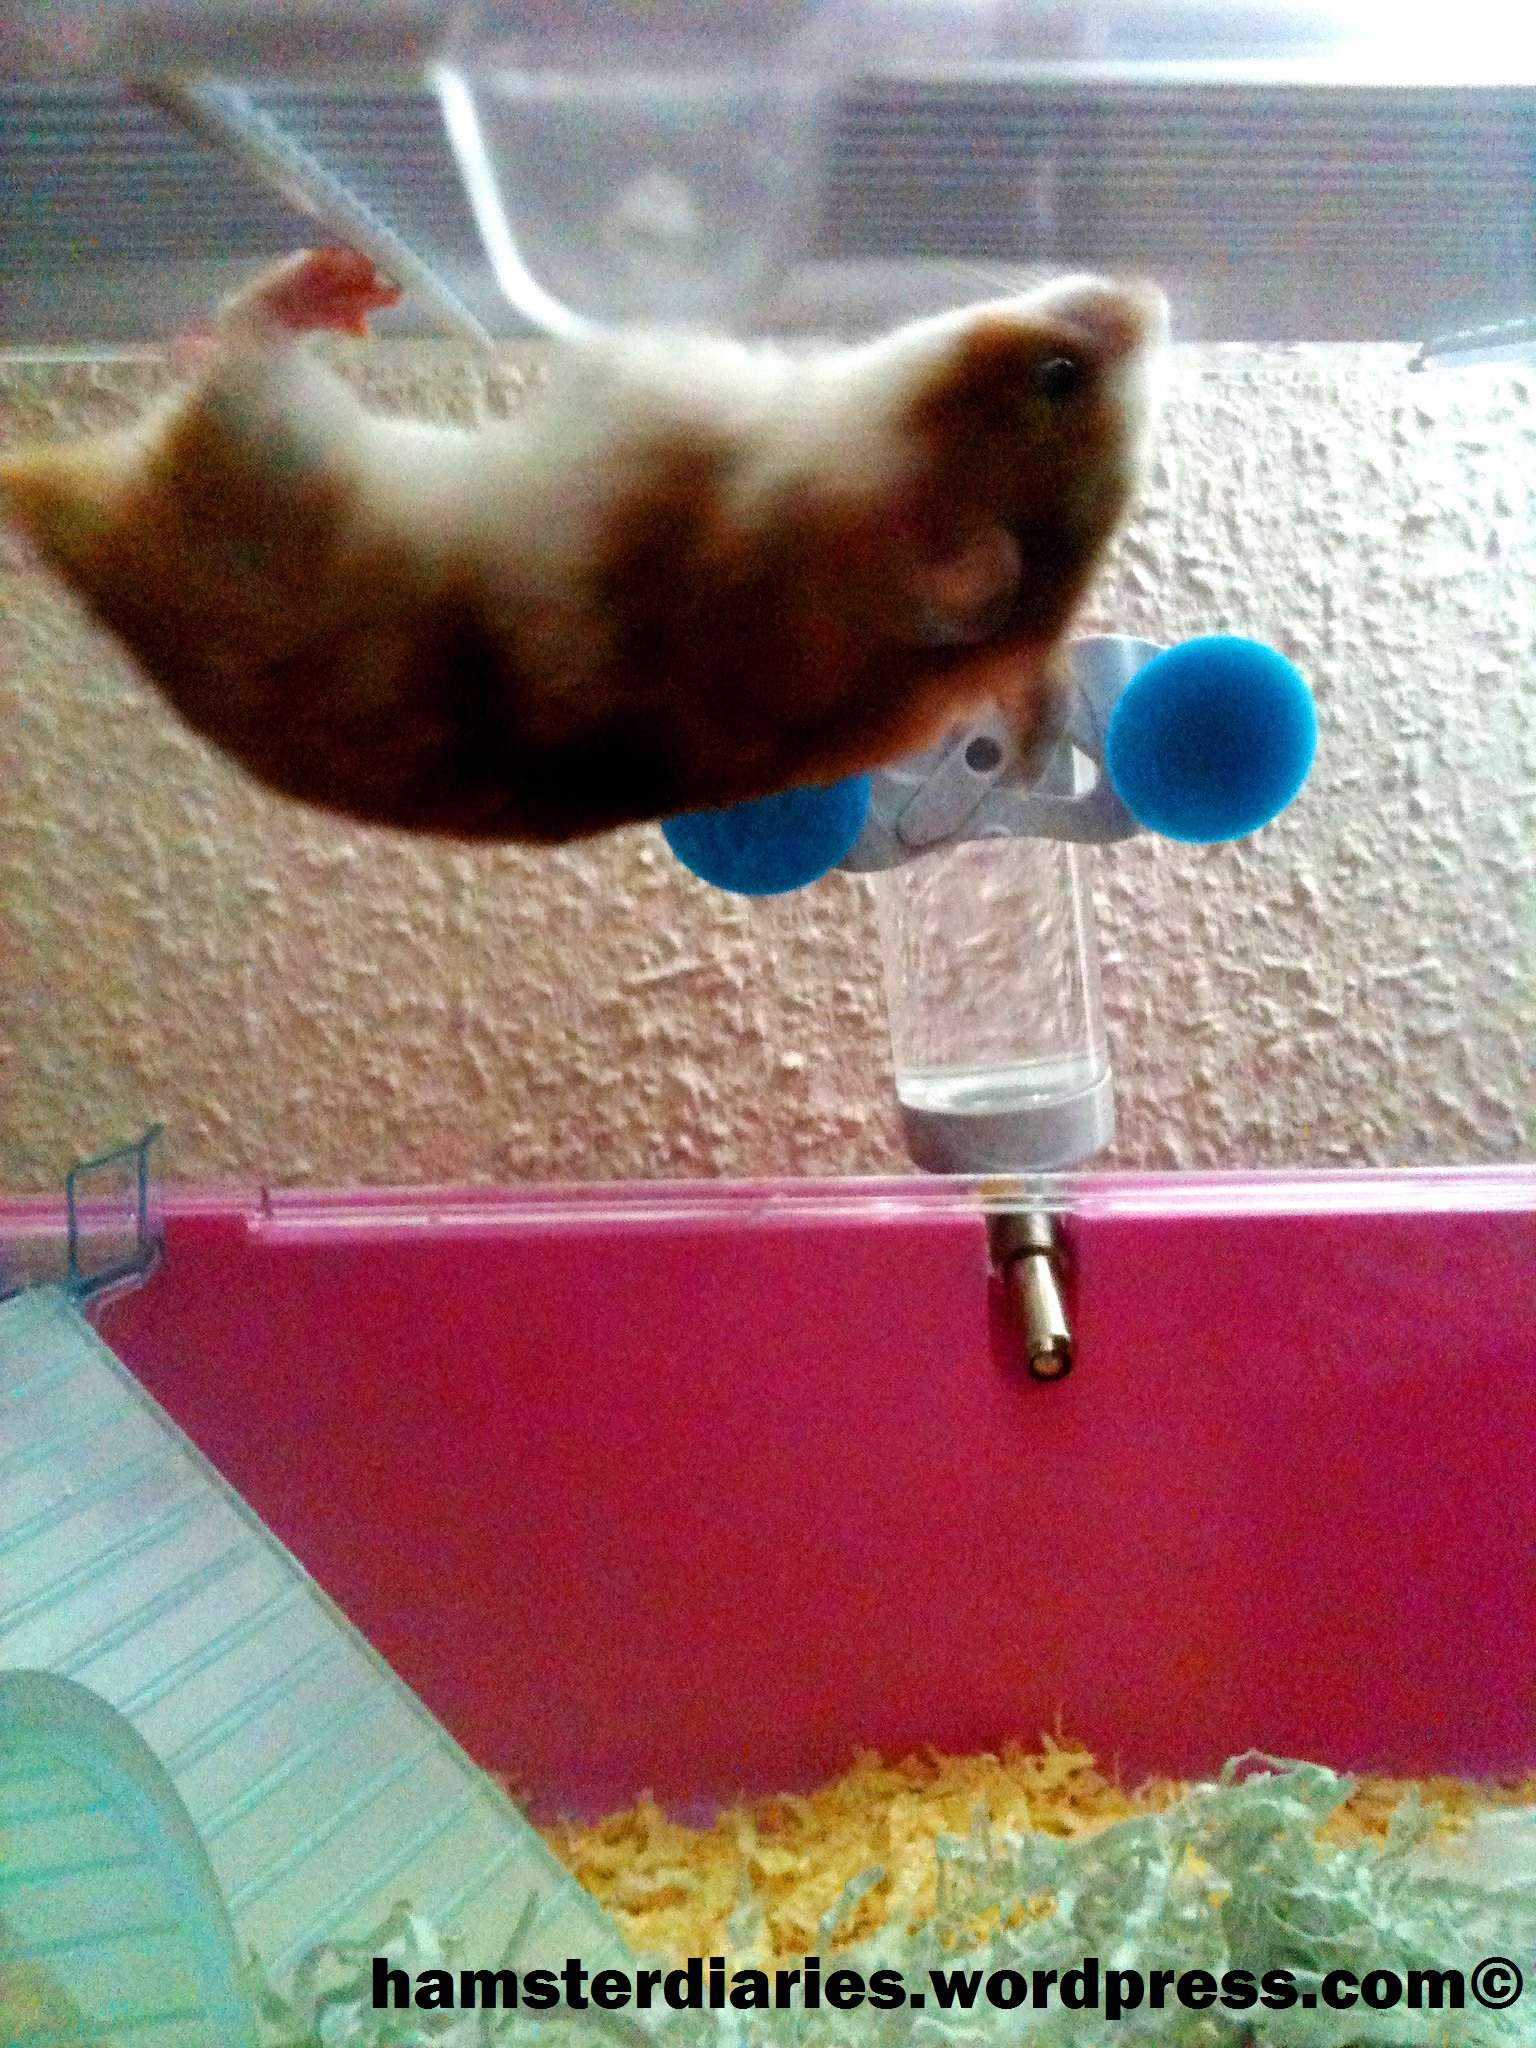 Can Hamsters Get Concussion? | HamsterDiaries